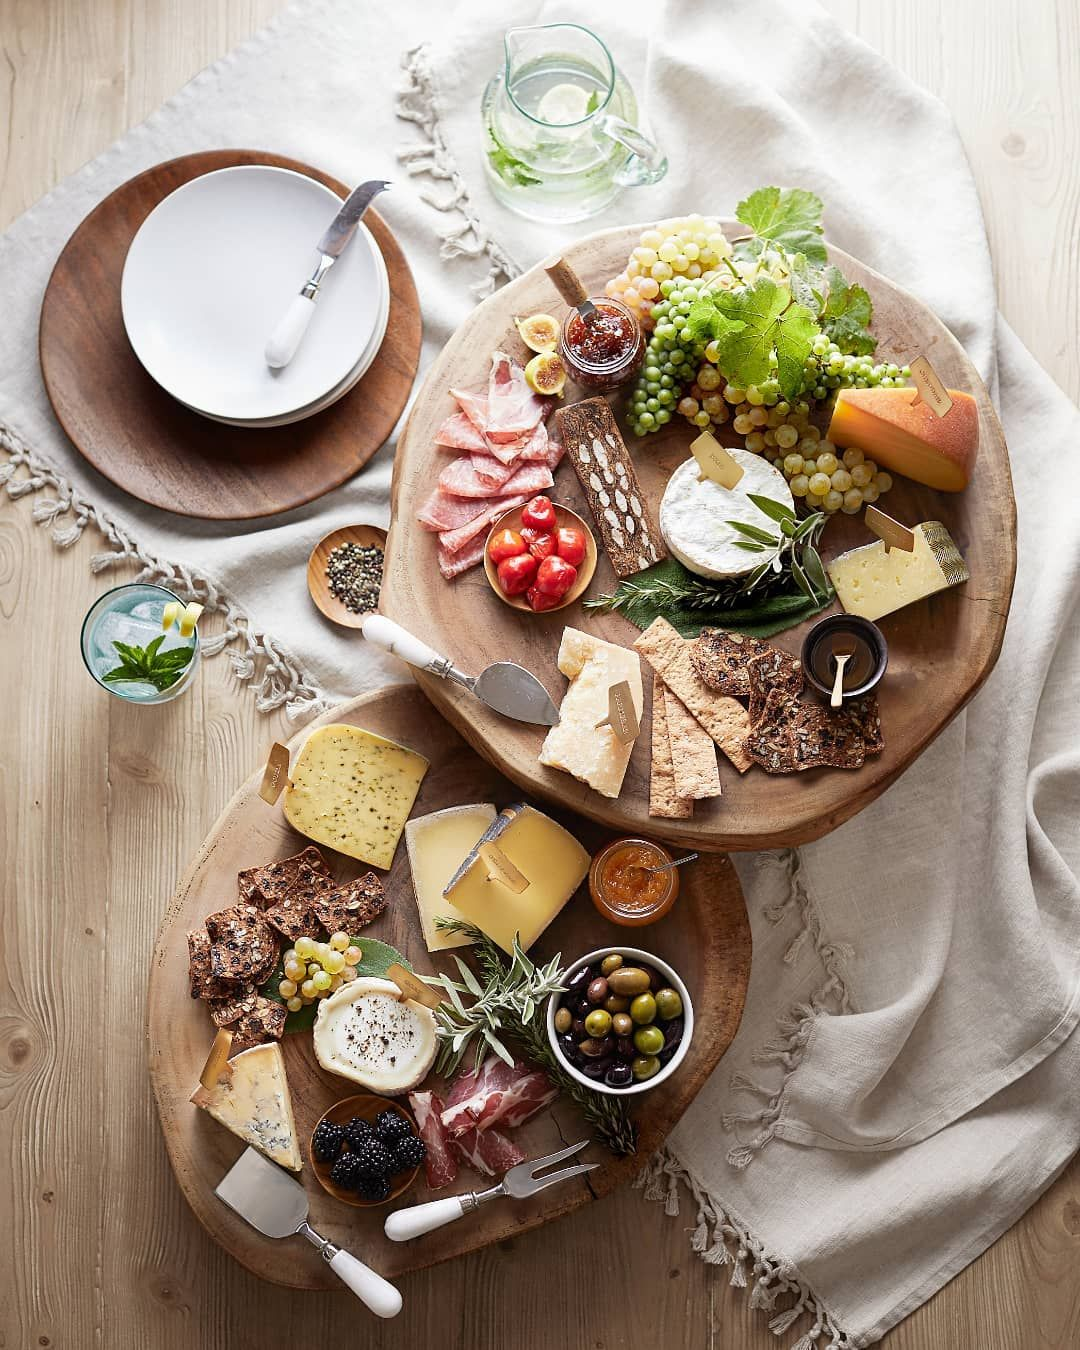 Charcuterie boards, cheese, and inspiration for easy entertaining - Pottery Barn.